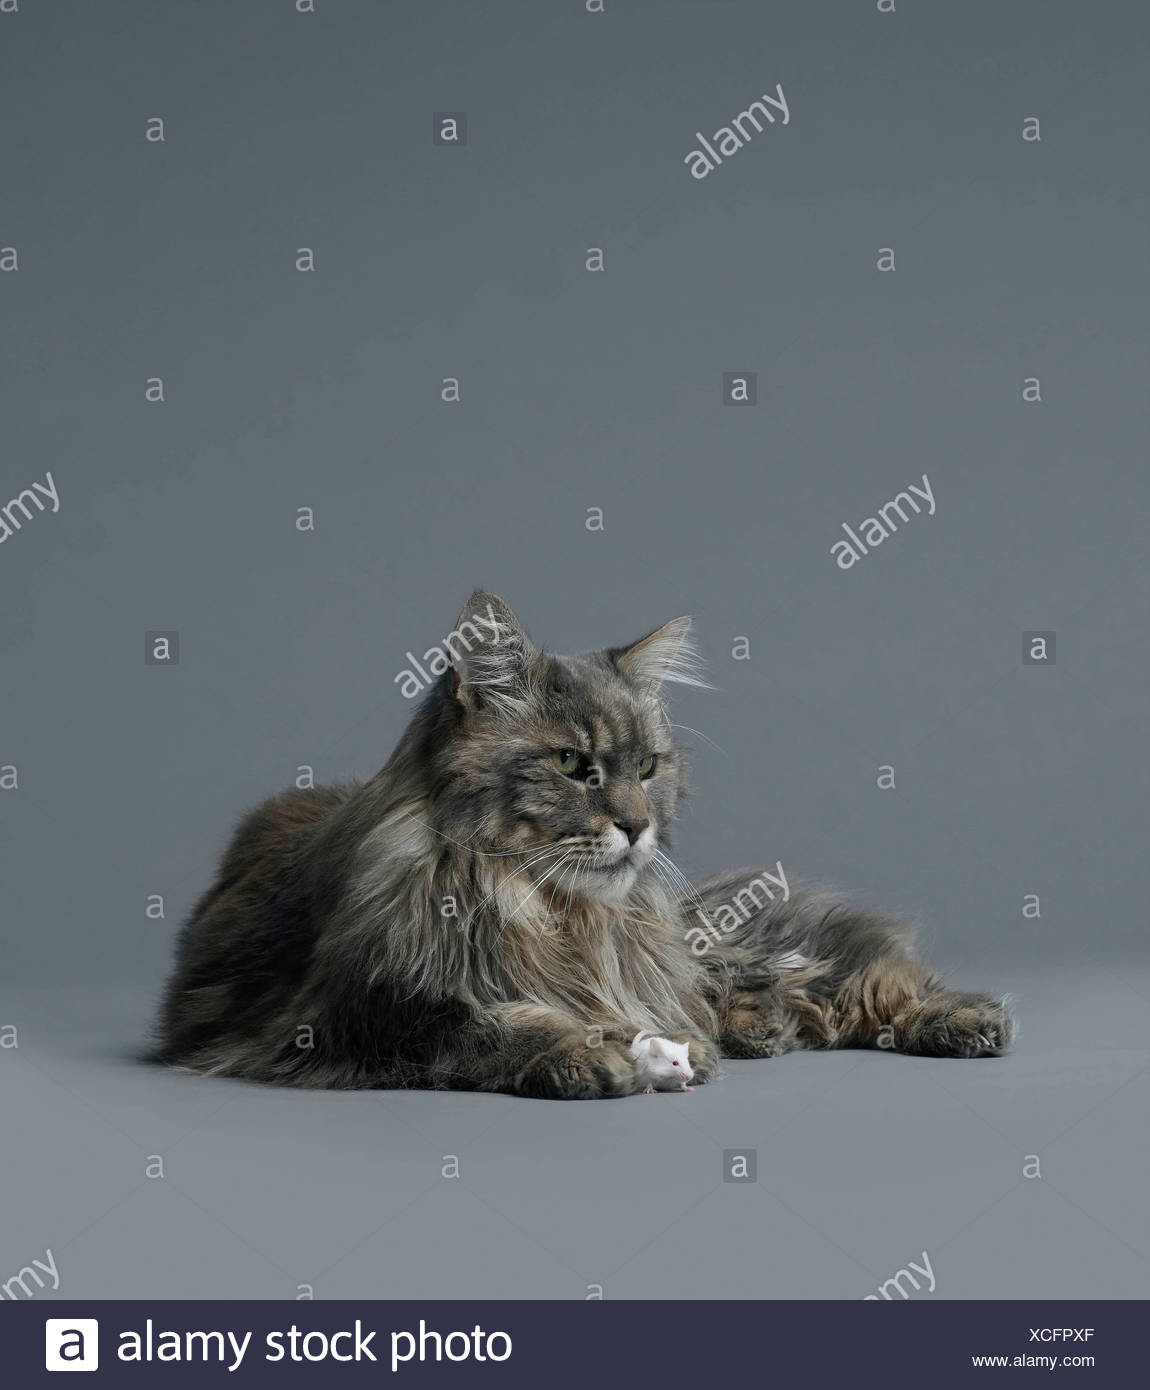 Mouse sitting between cats paws - Stock Image